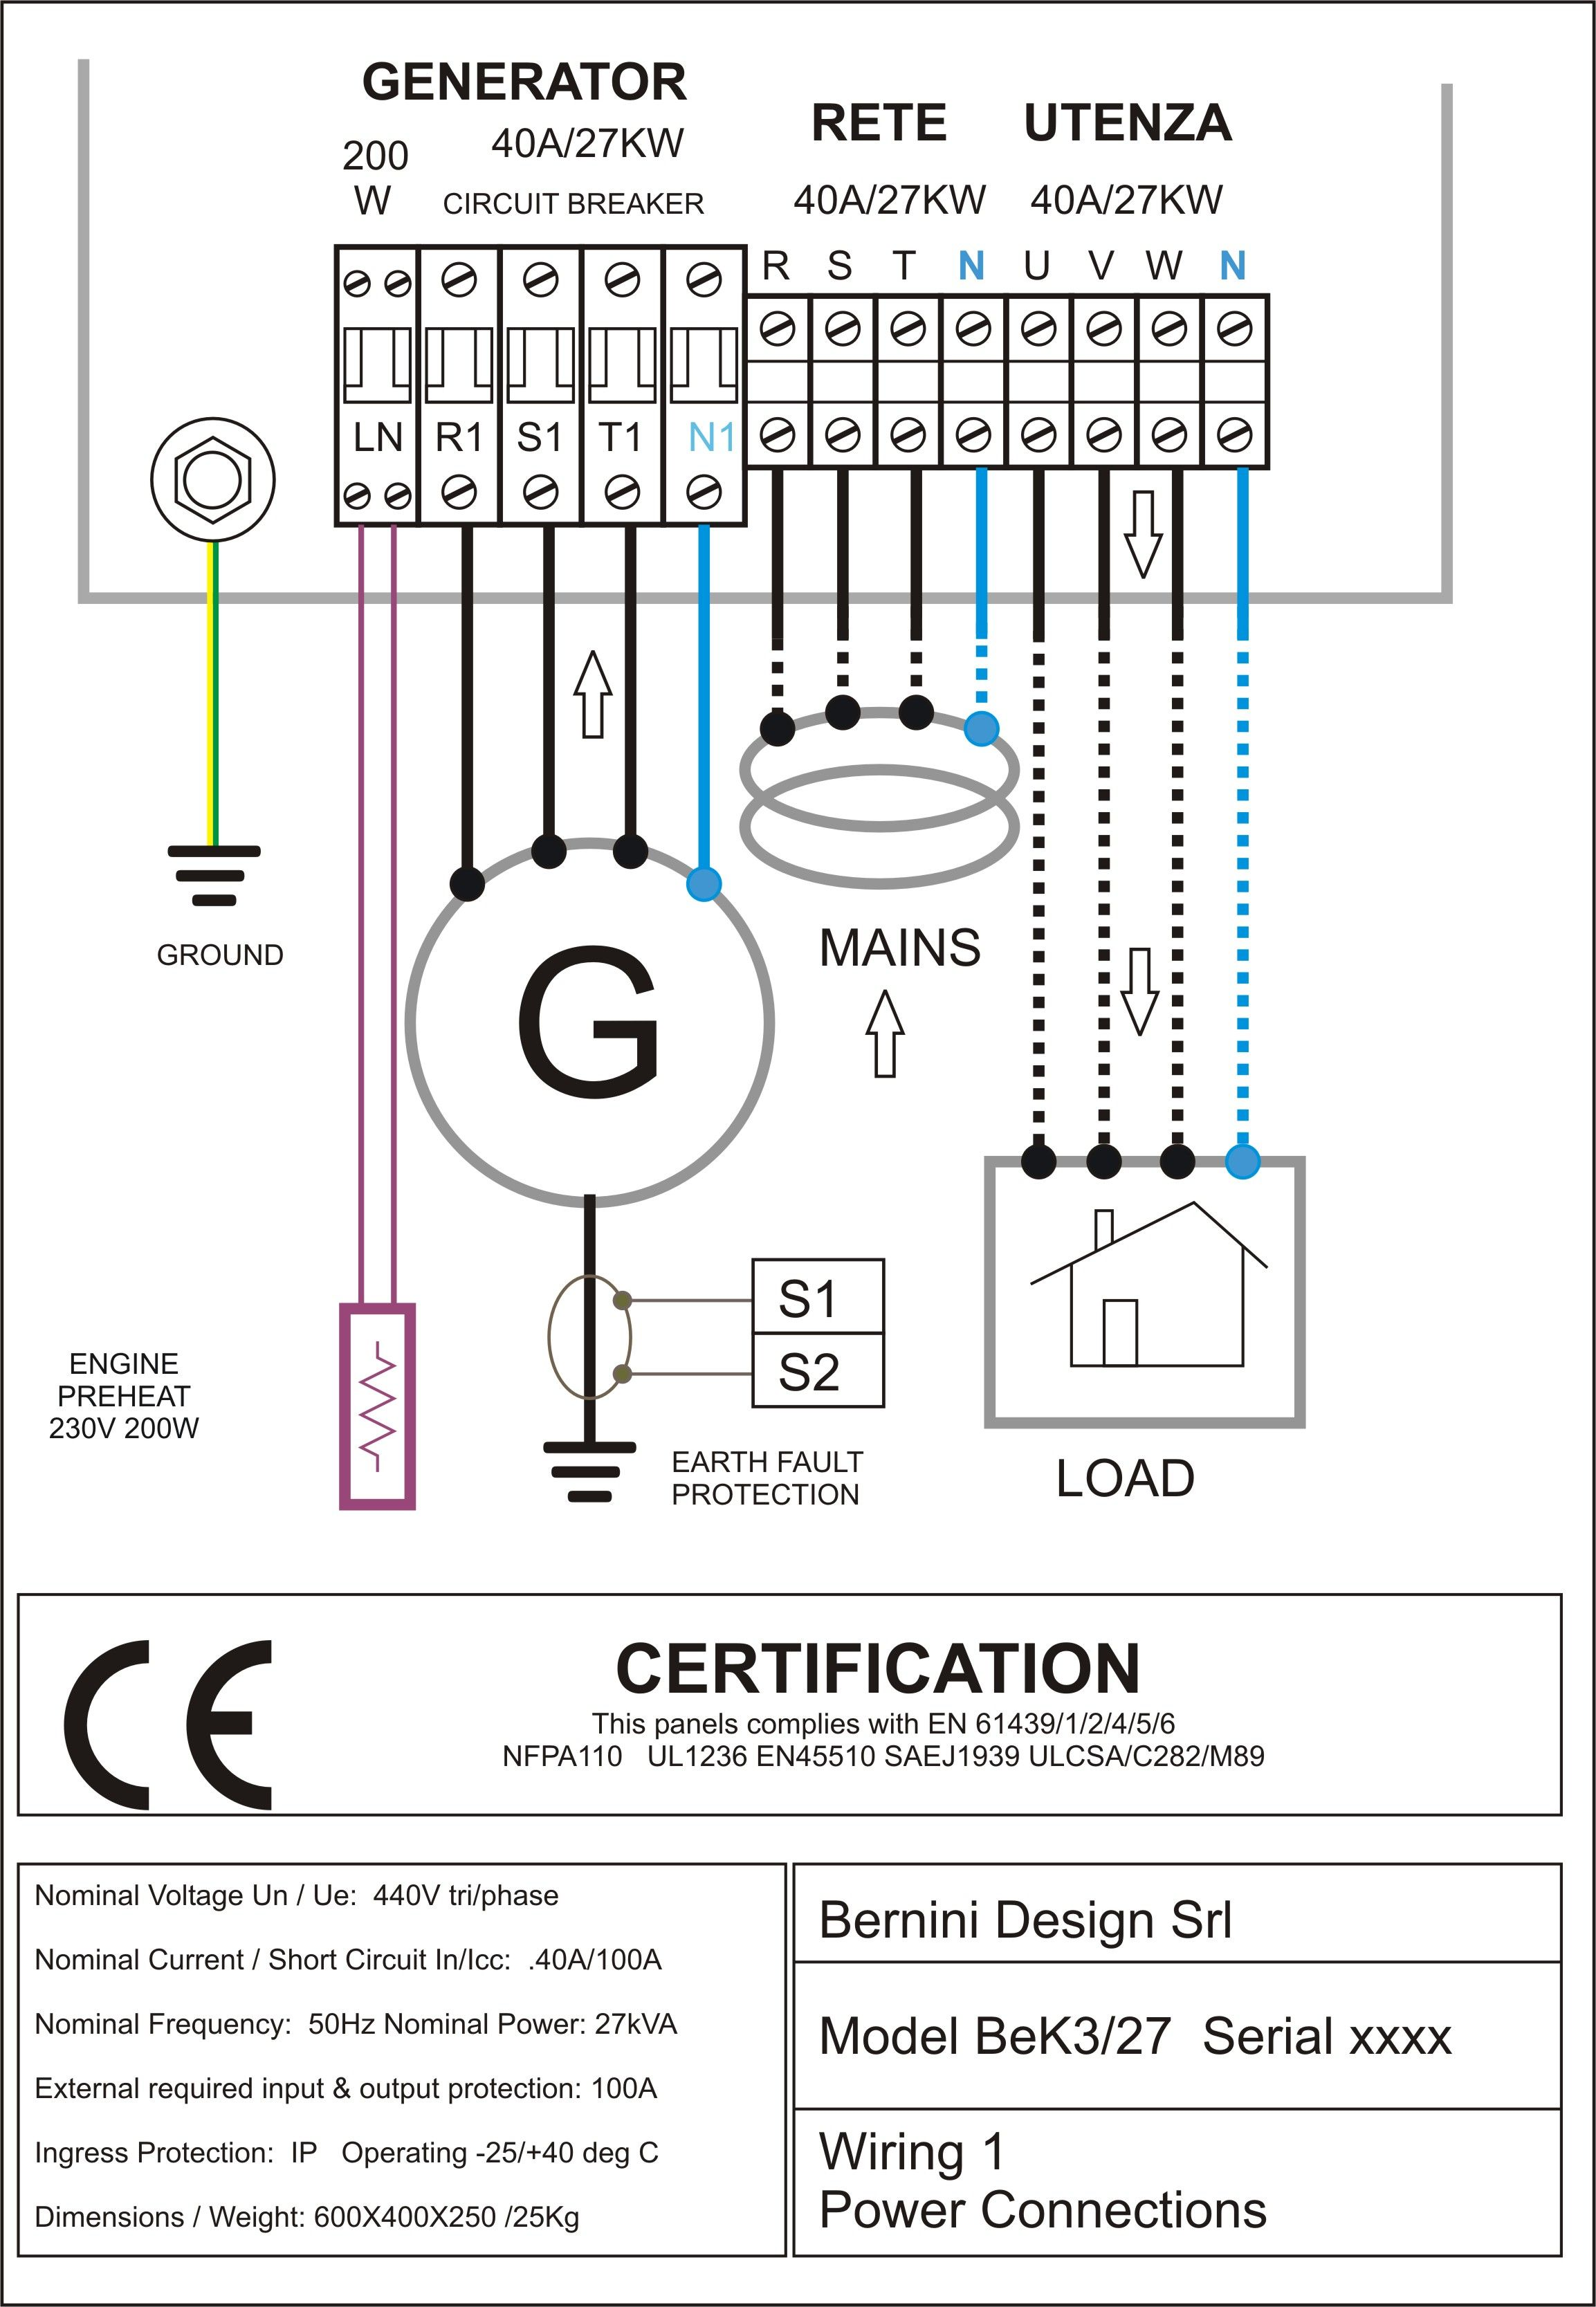 Motor Control Wiring Diagram Symbols Taotao Electric Scooter Panel All Data Diesel Generator Ac Connections Gr